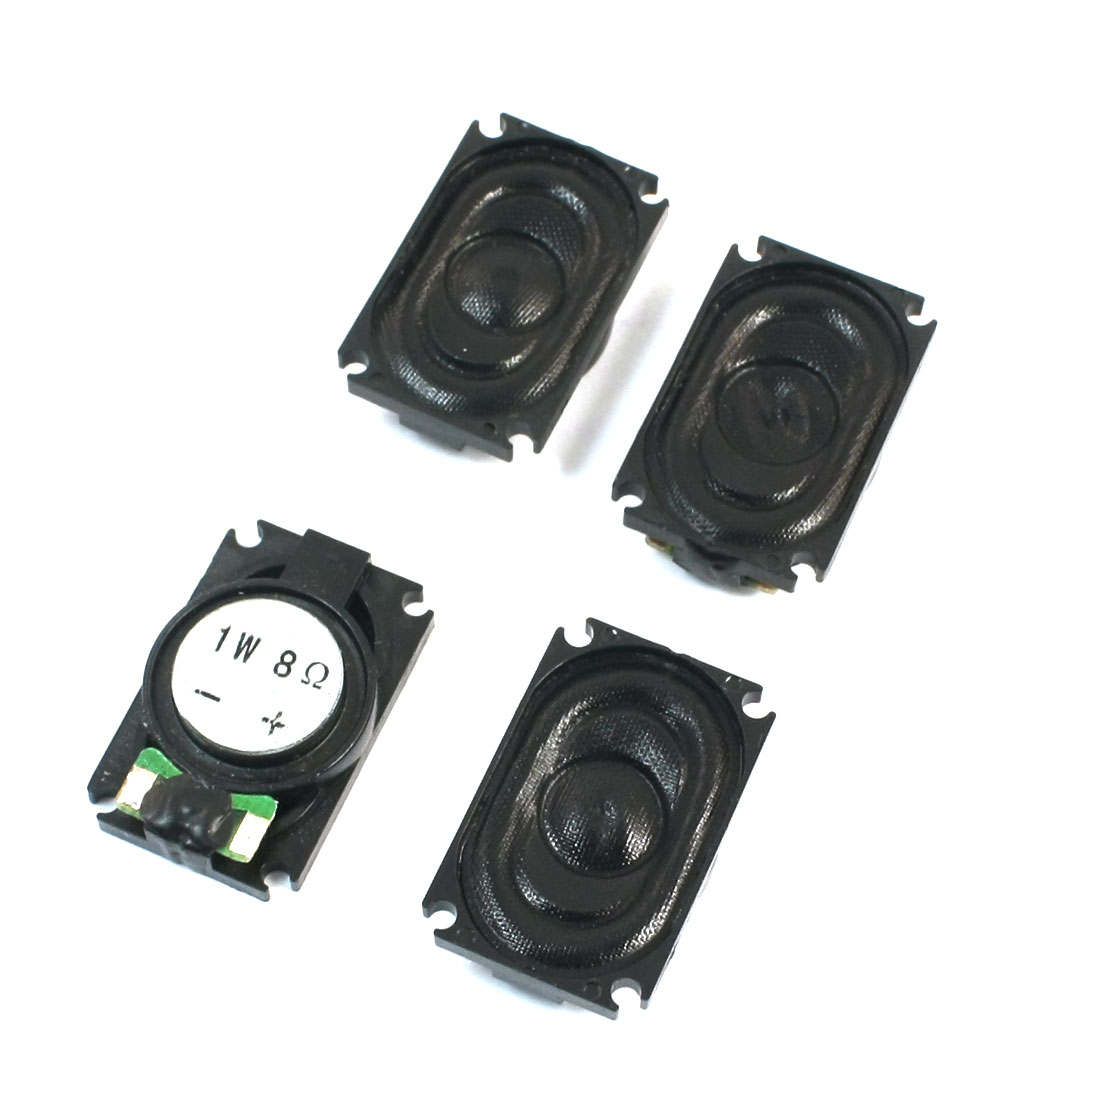 Notebook Music Player Part 1W 8 Ohm Magnetic Type Rectangle Shell Audio Speaker Loudspeaker Amplifier 25mm x 15mm 4 Pcs